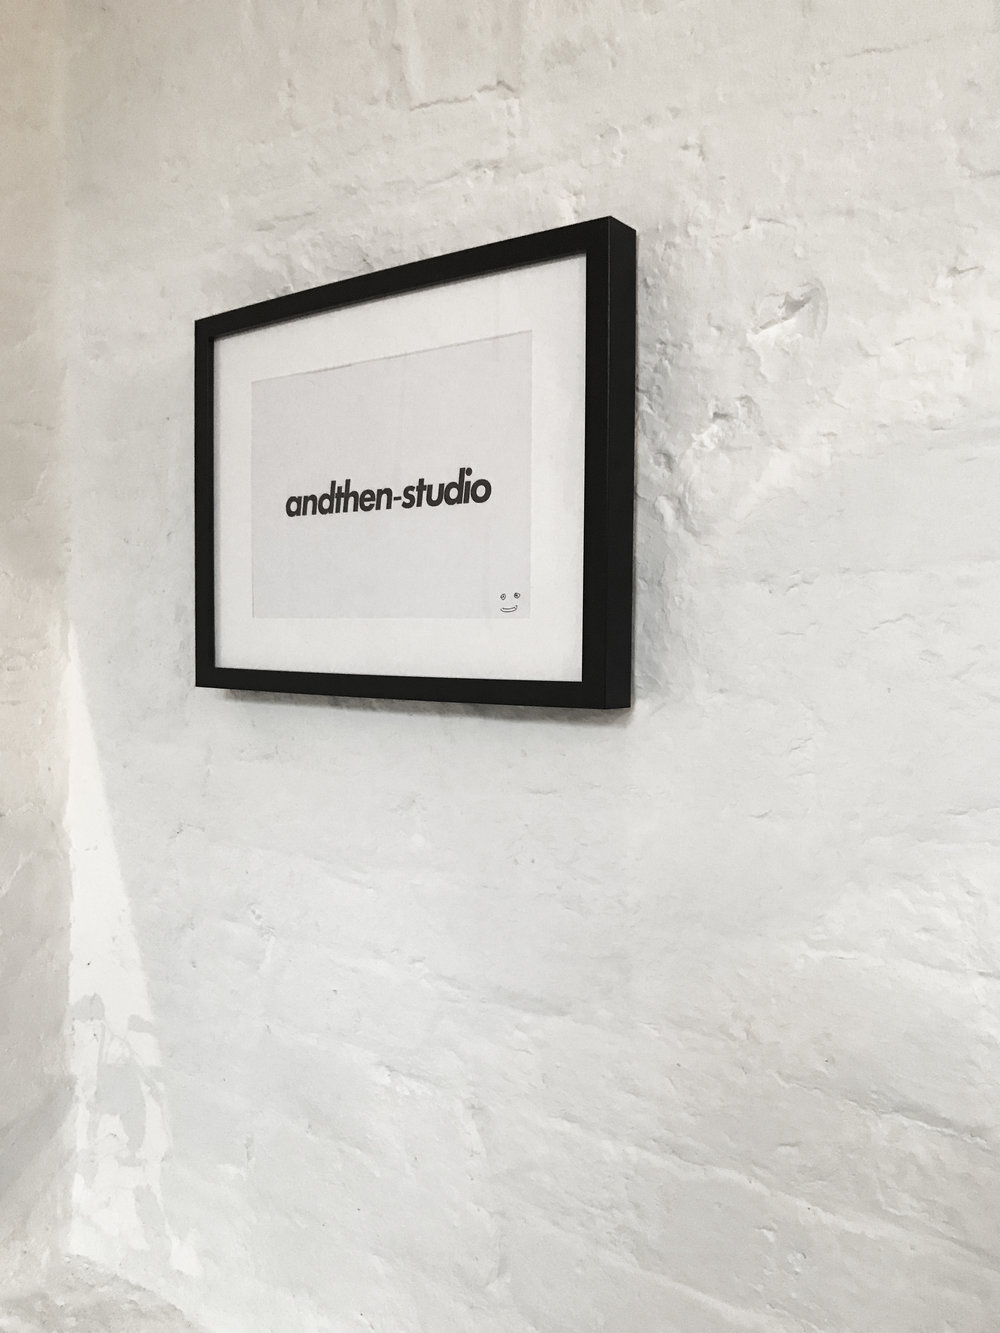 andthen-studio logo on the wall